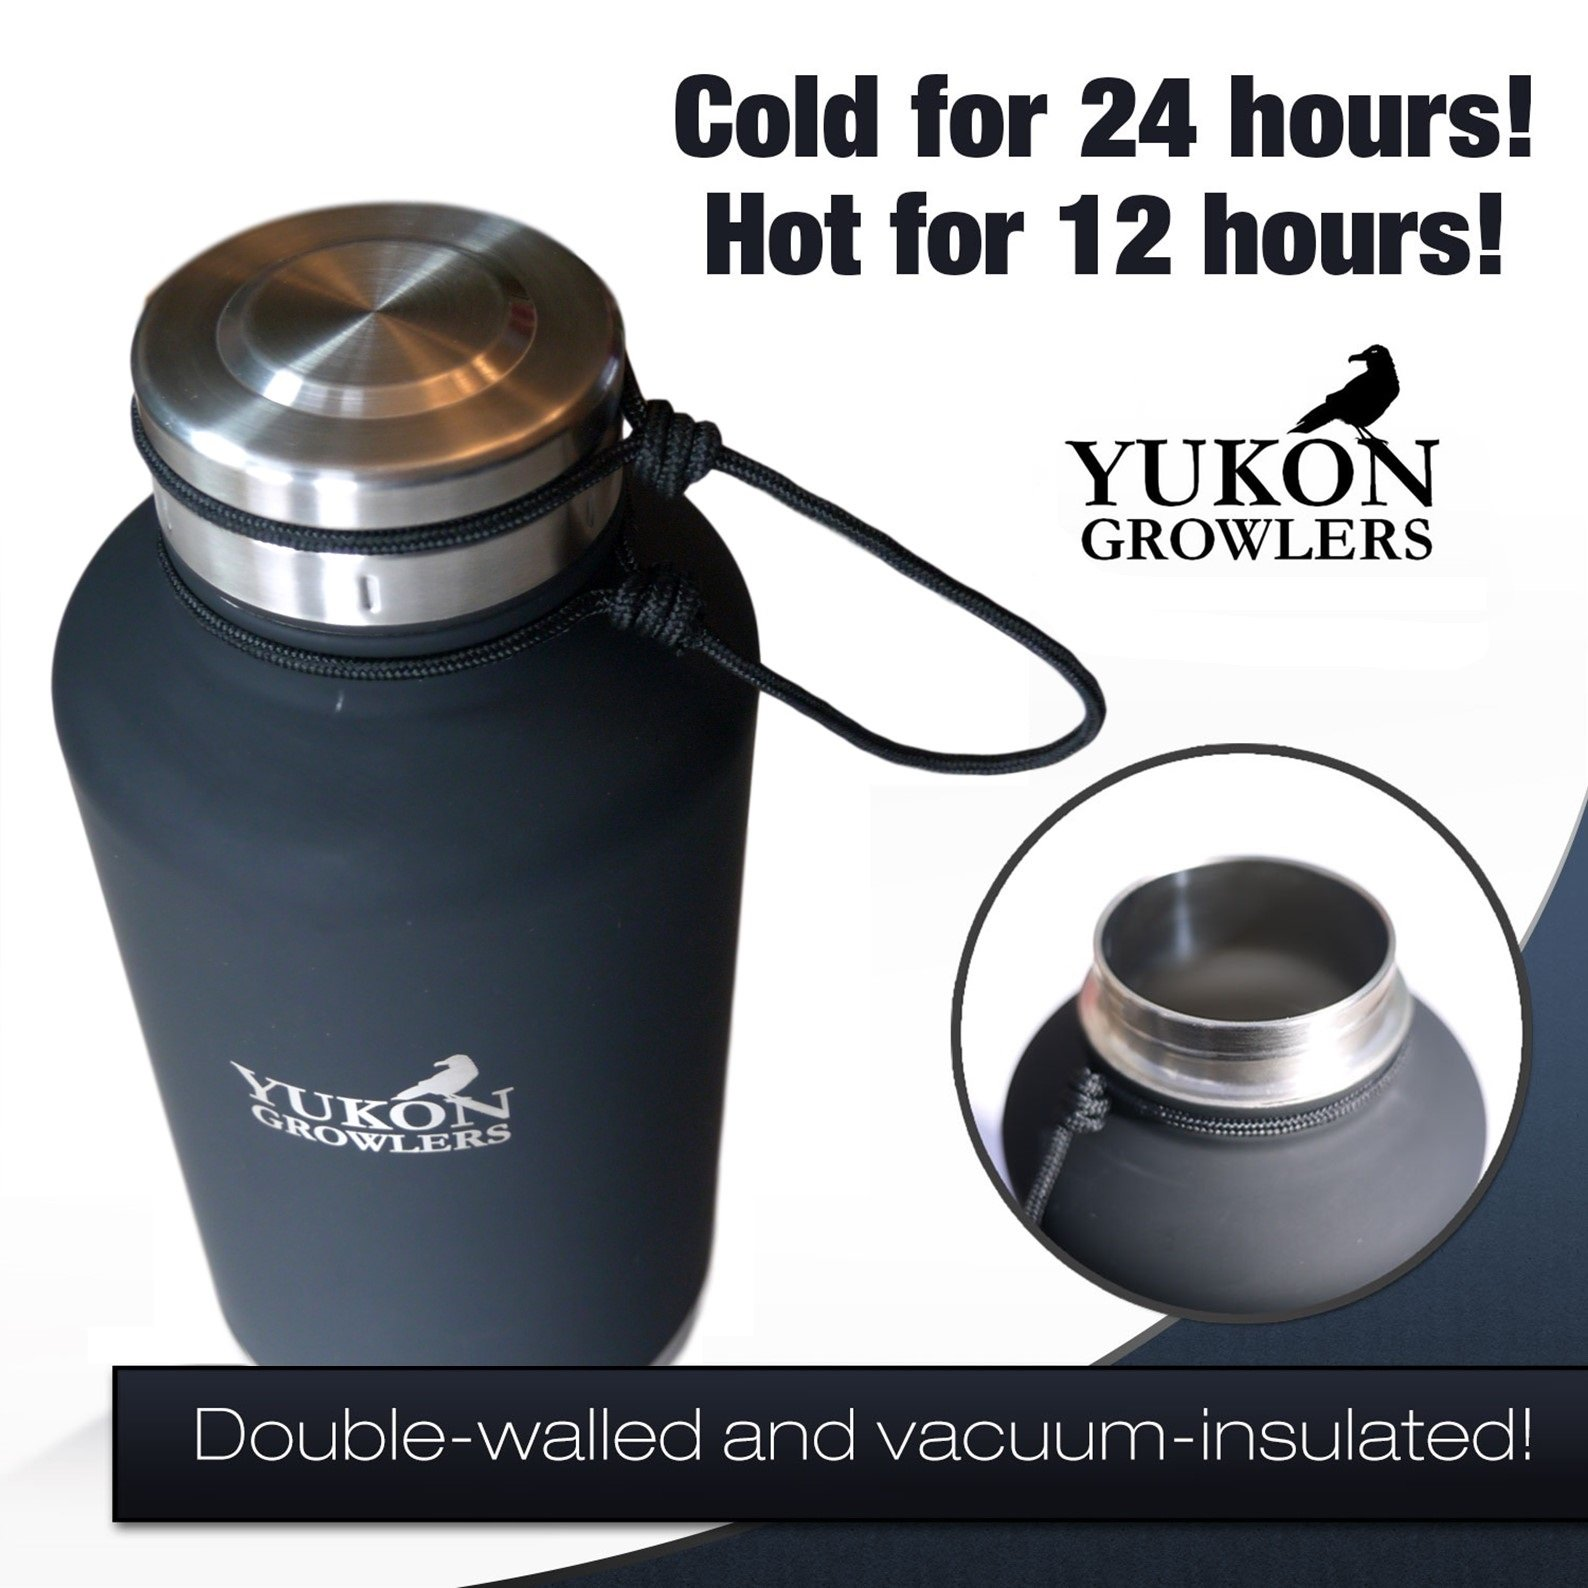 Yukon Growlers Insulated Beer Growler - Keep Your Beer Cold and Carbonated for 24 Hours - Stainless Steel Vacuum Water Bottle with Carrying Case Also Keeps Coffee Hot - Improved Lid - 64 oz by Yukon Growlers (Image #4)